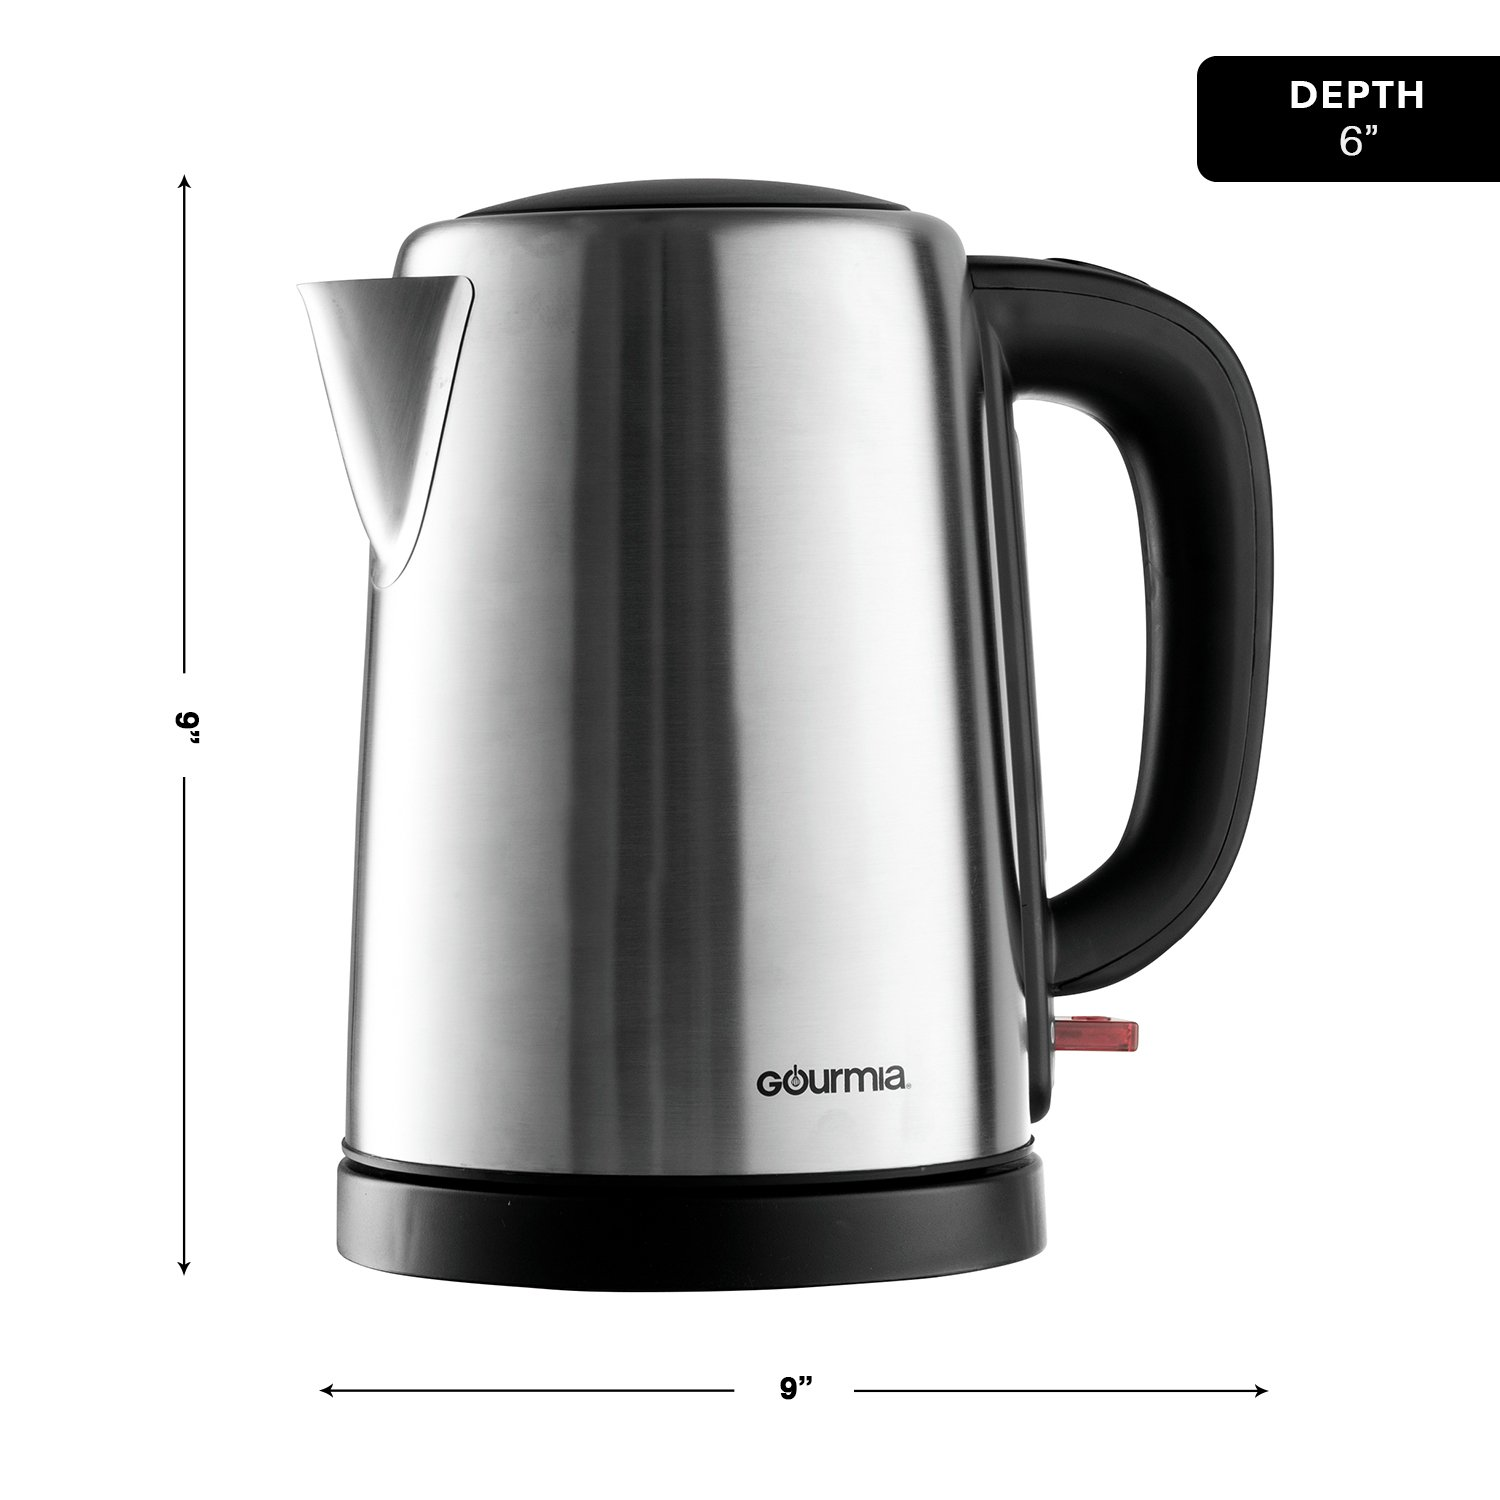 Gourmia GK250 (1.8 Qt/1,7 L) Cordless Stainless Steel Kettle Supreme - Speed Boil - Auto Shutoff Boil Detect - Concealed Element - 360 Swivel Base - 1500 Watts by Gourmia (Image #6)